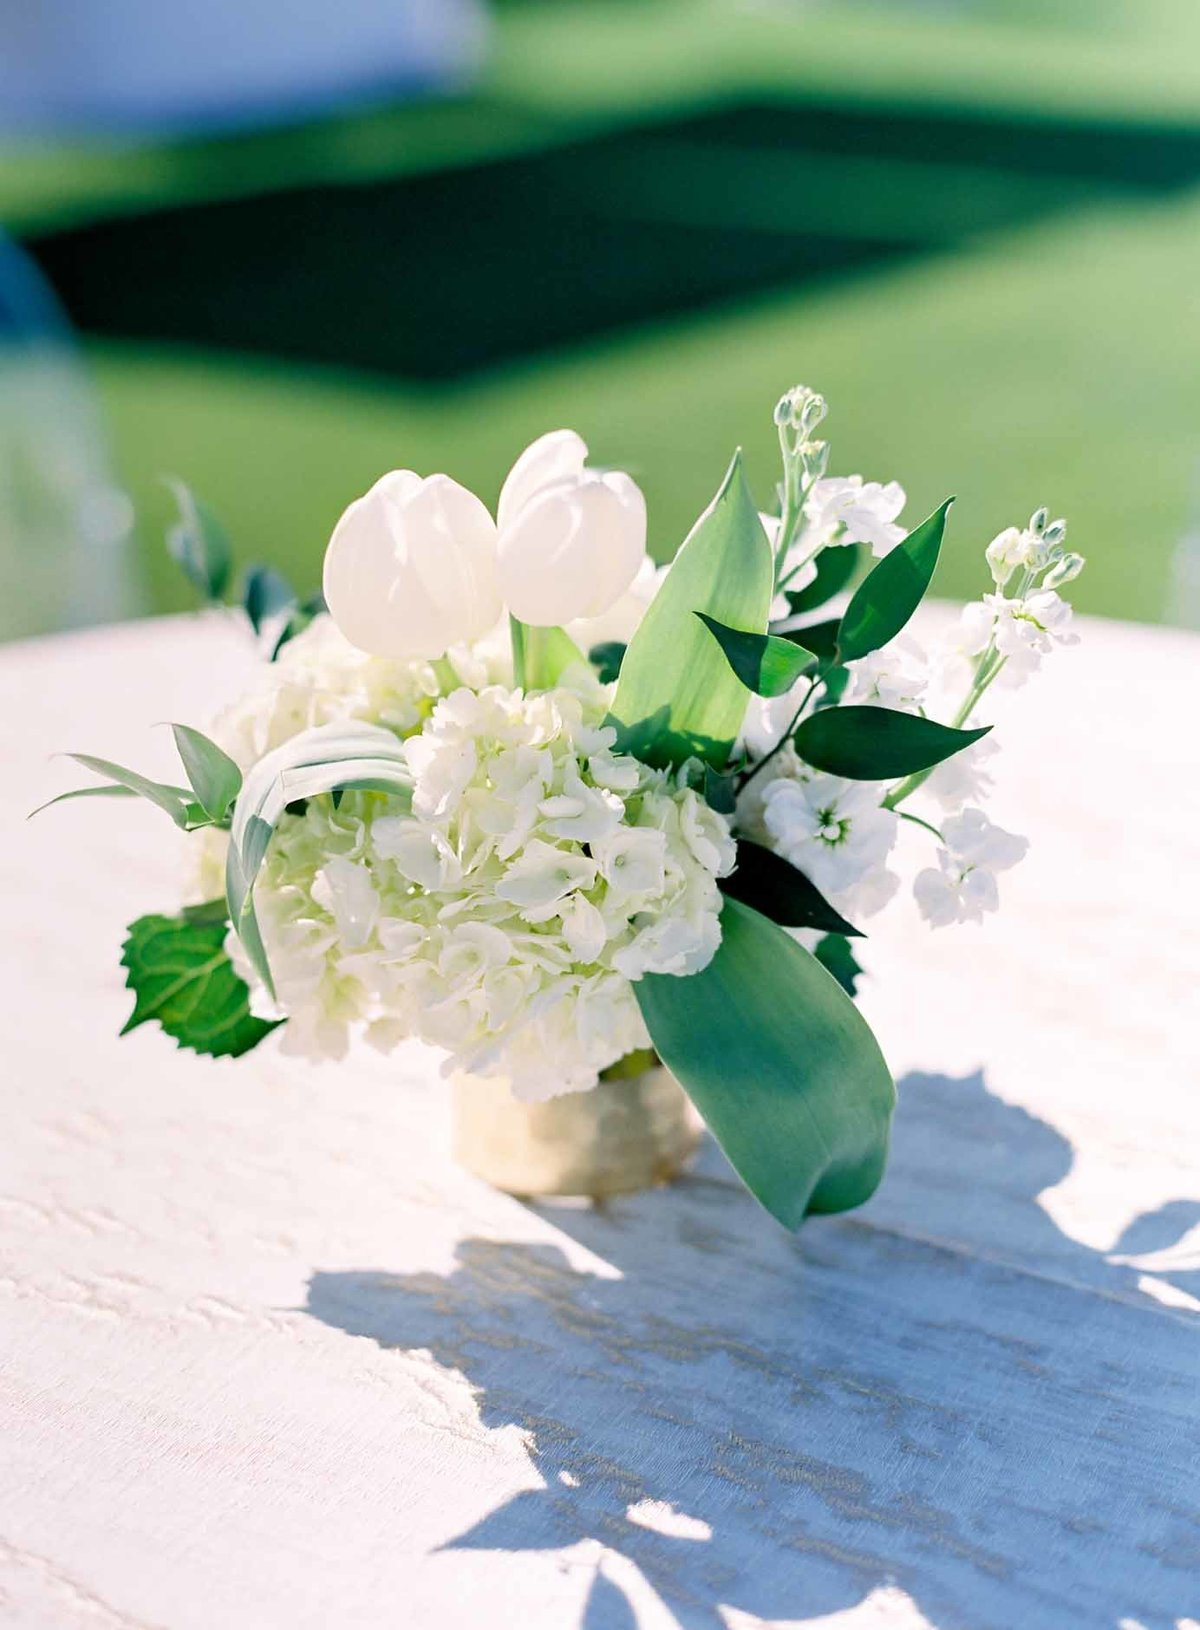 Beautiful outdoor wedding reception cocktail arrangement or white tulips hydrangea and stock.